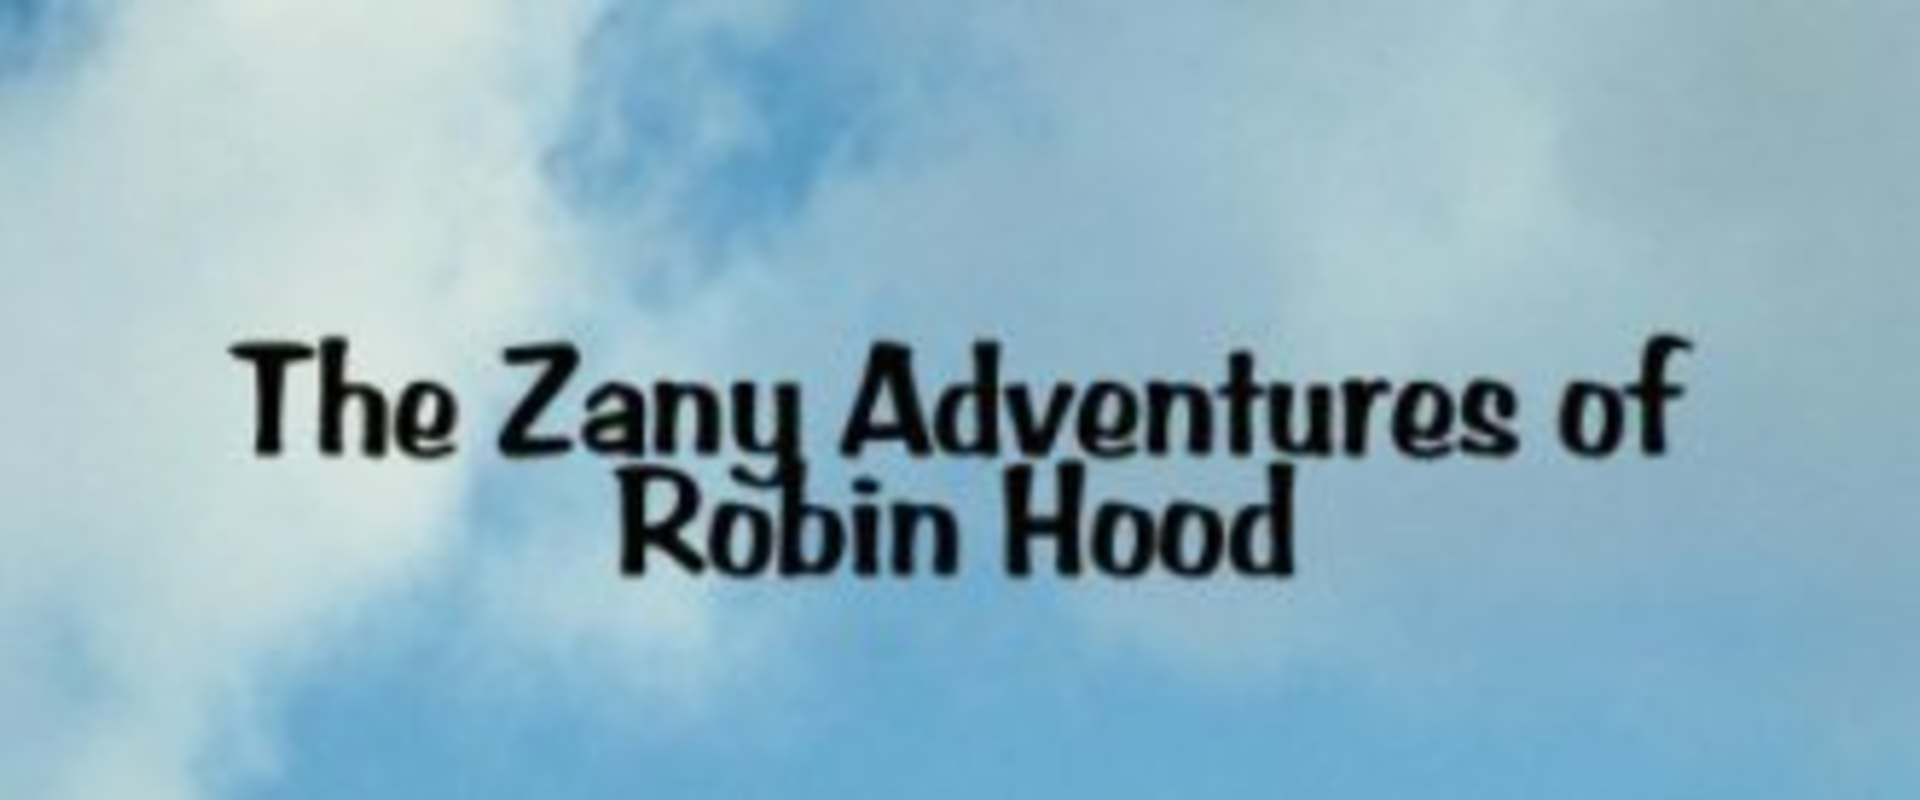 The Zany Adventures of Robin Hood background 1